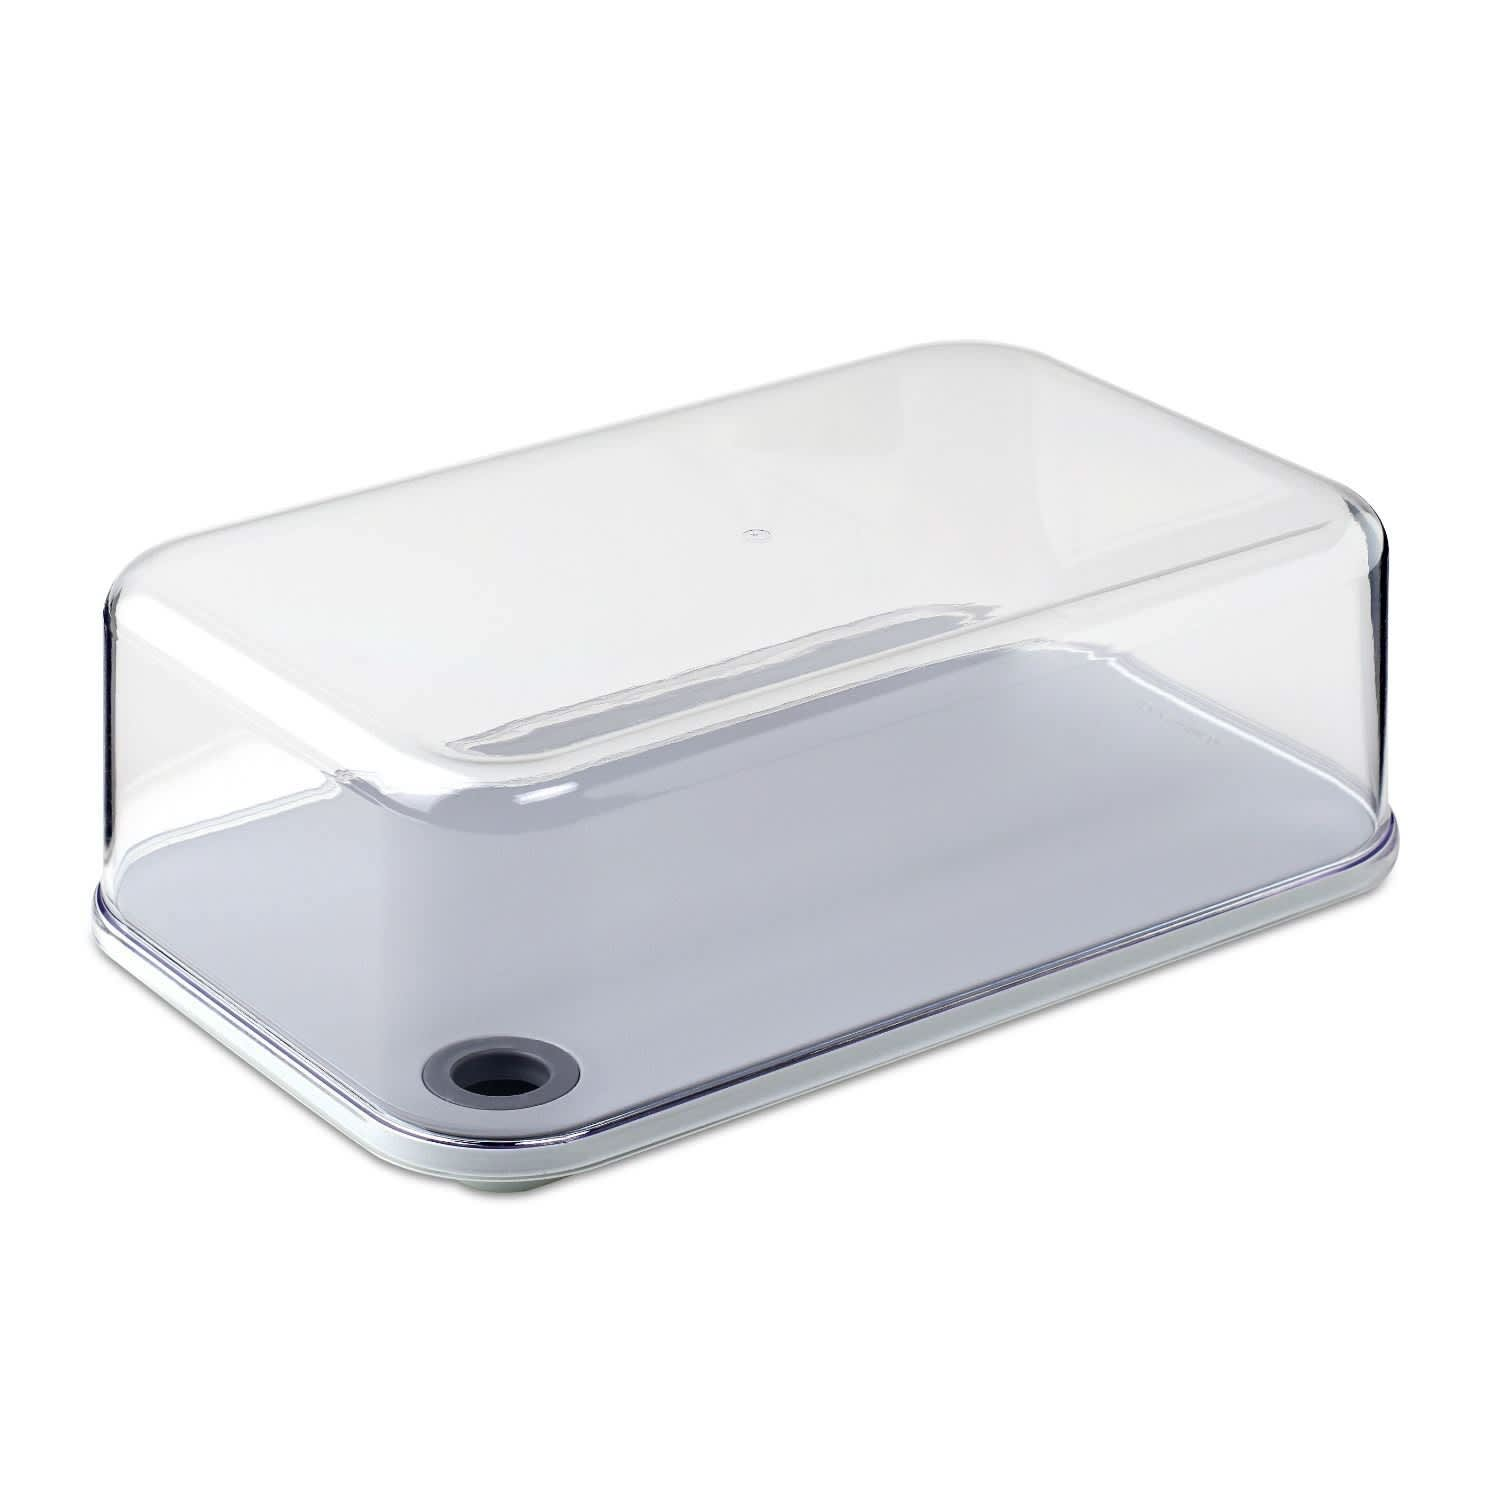 This $5 Plastic Container Changed How I Eat Dinner: gallery image 1